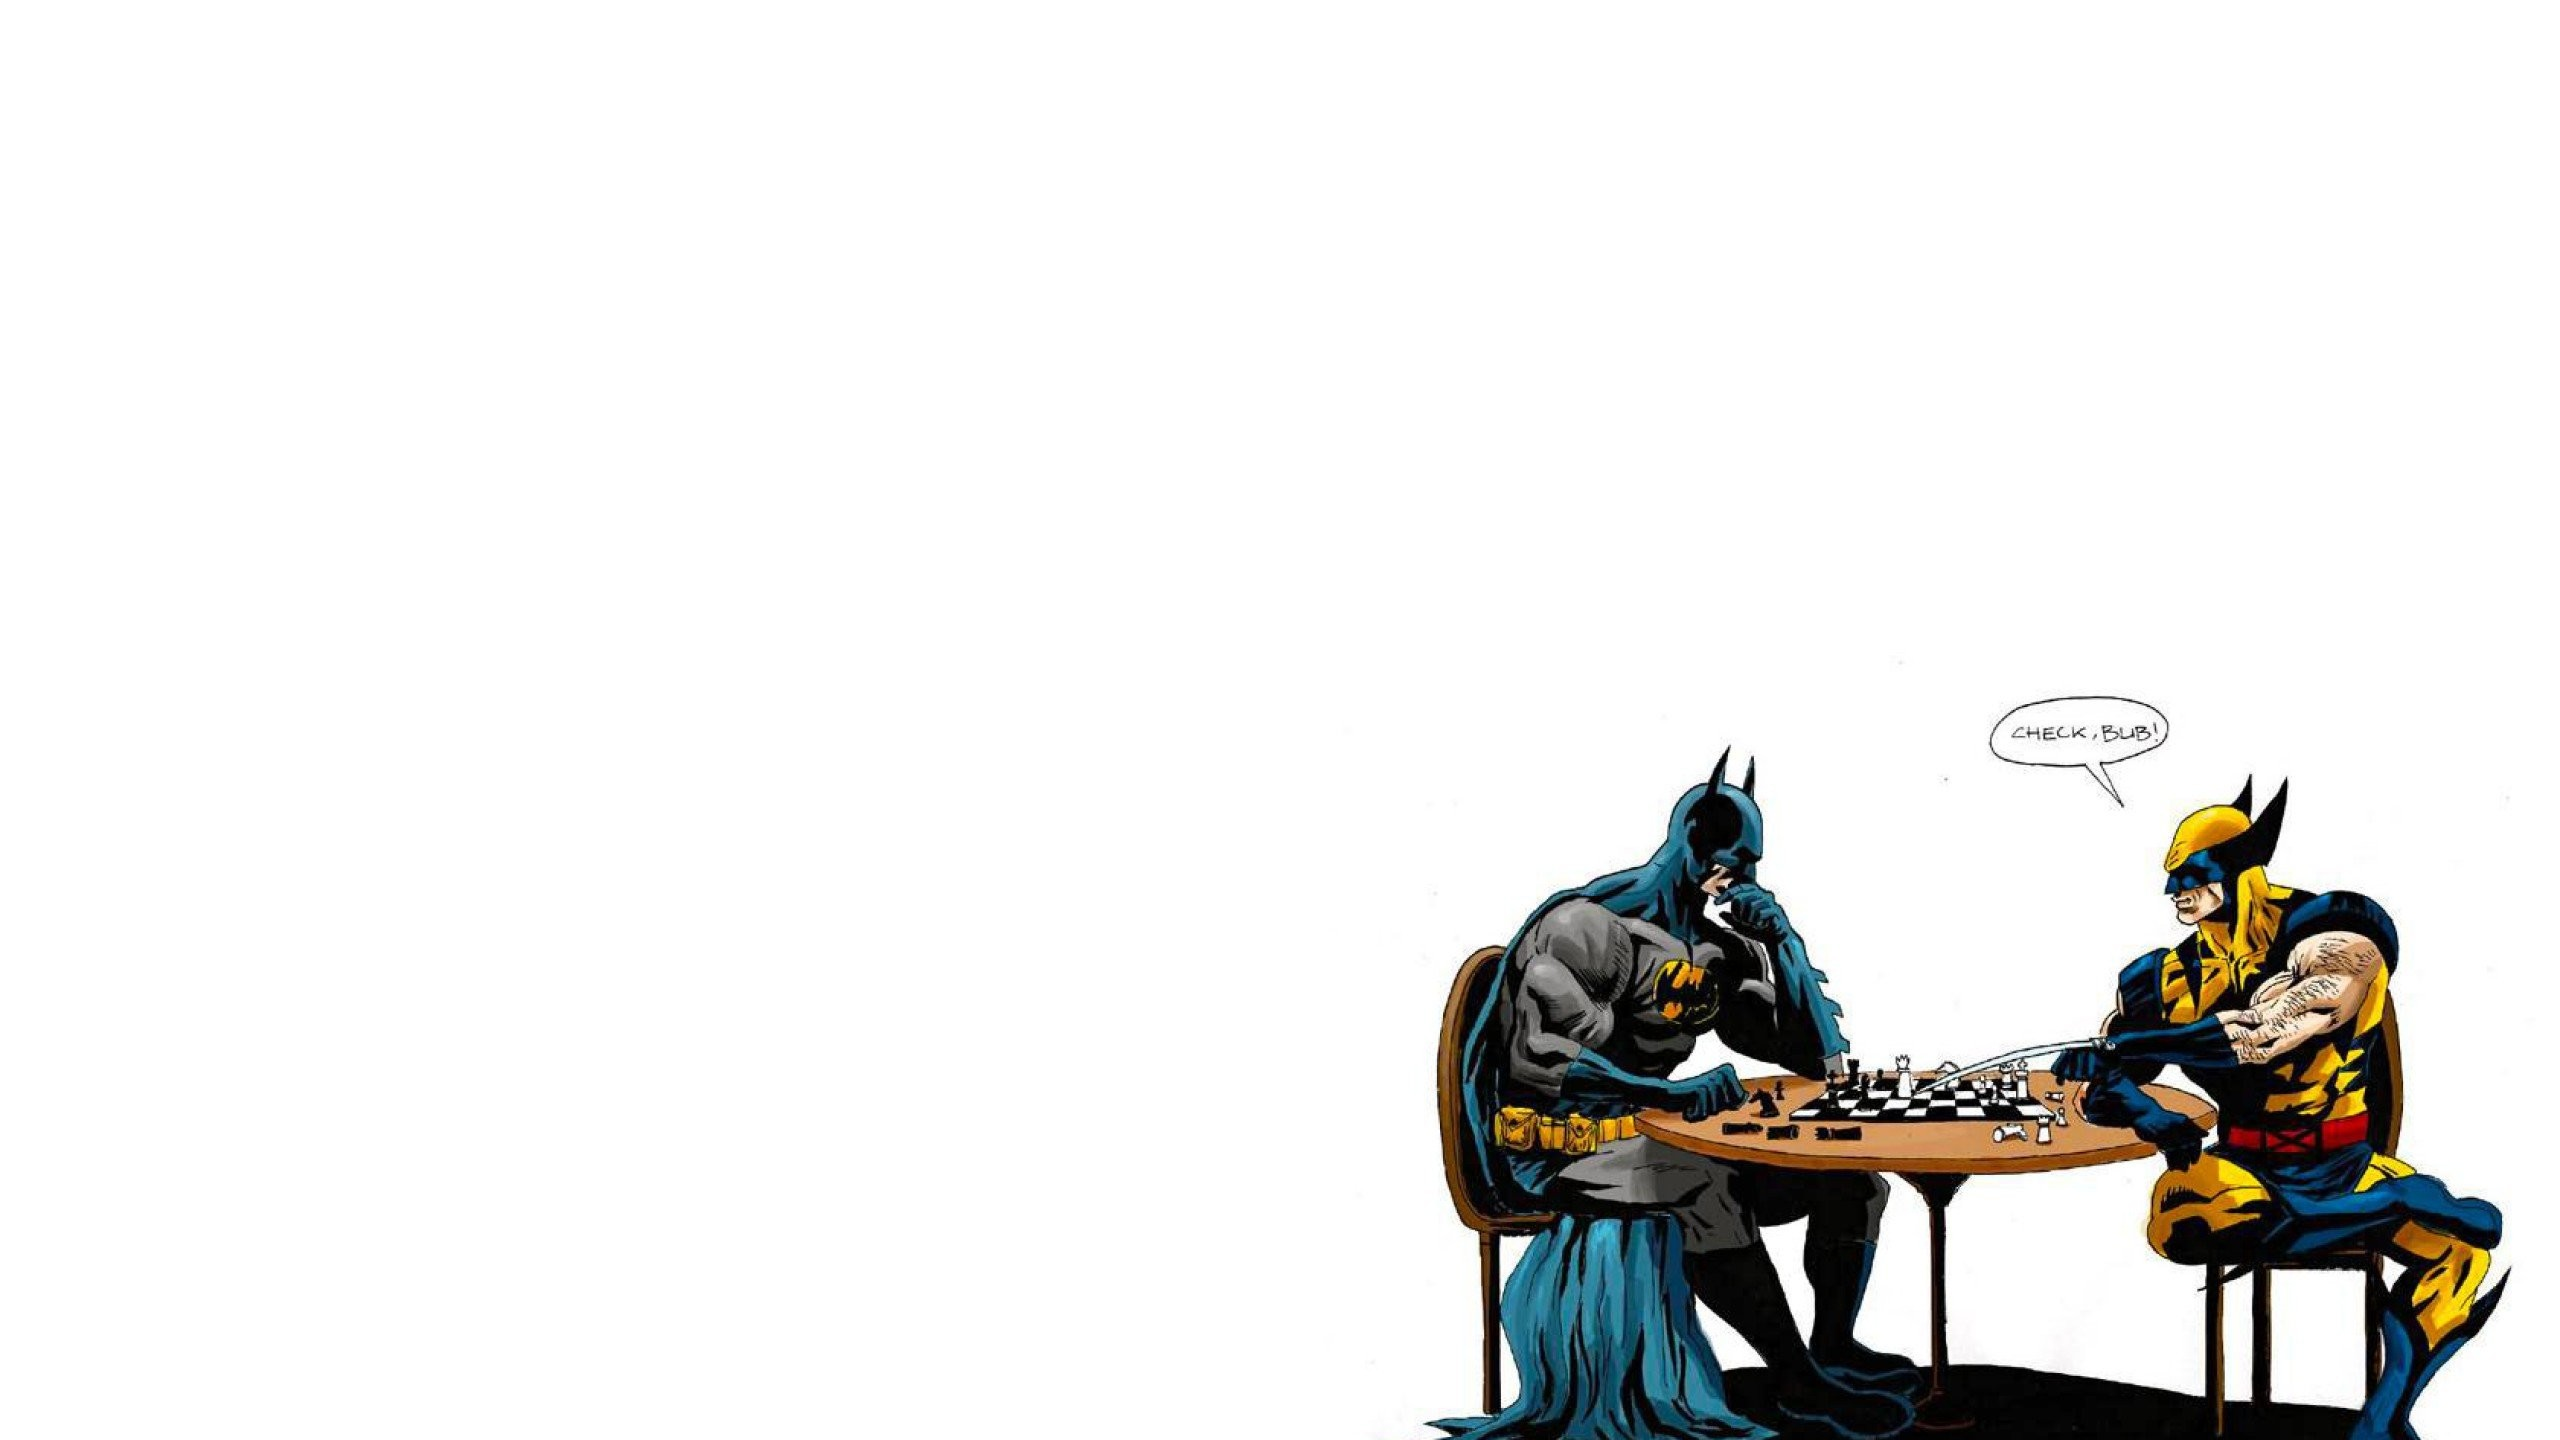 2560x1440 ... Wolverine or batman? by Lemongraphic on DeviantArt ...